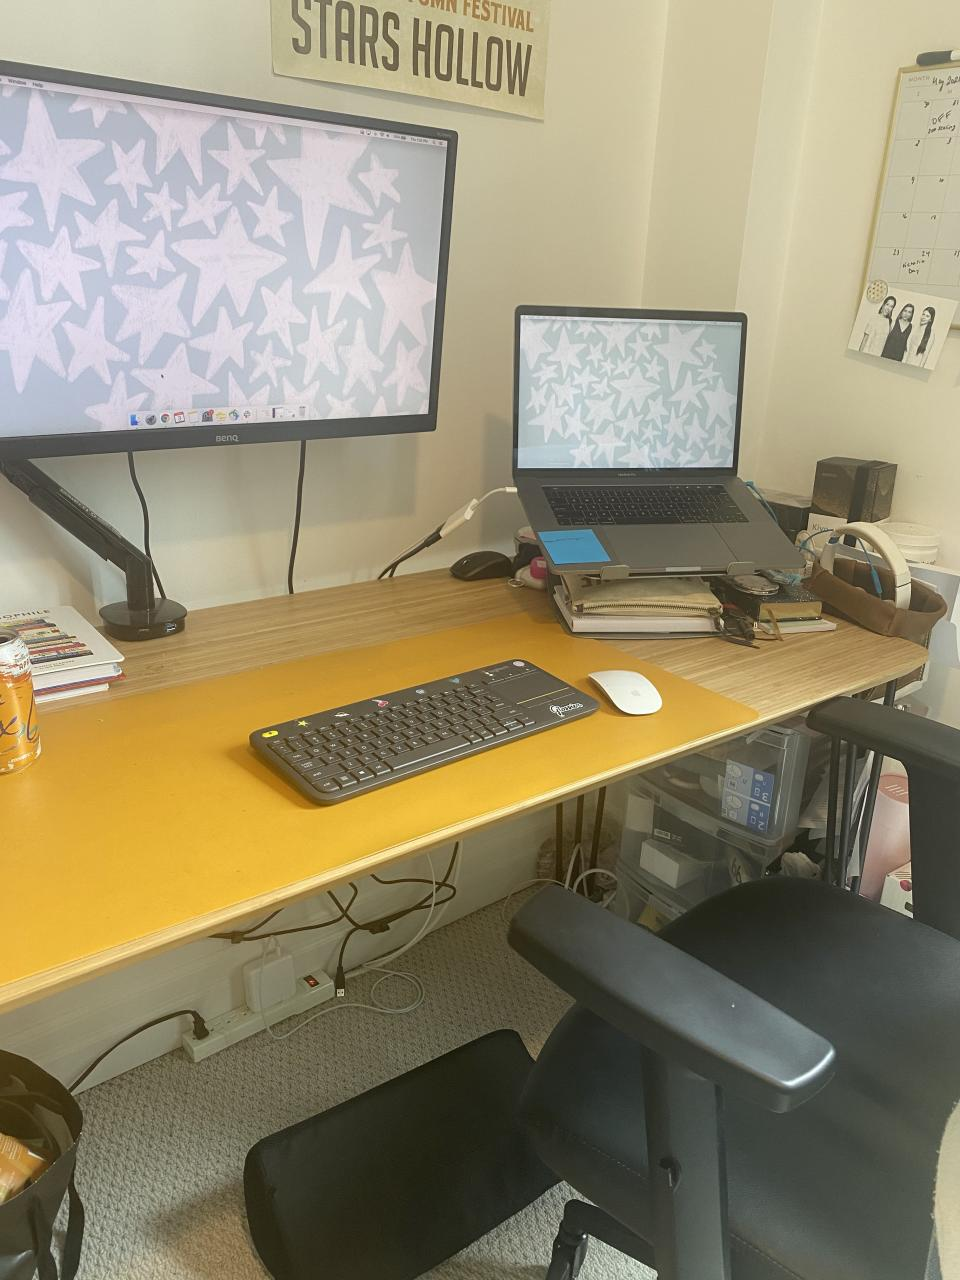 My home office setup includes ergonomic updates like an elevated monitor and foam footrest.